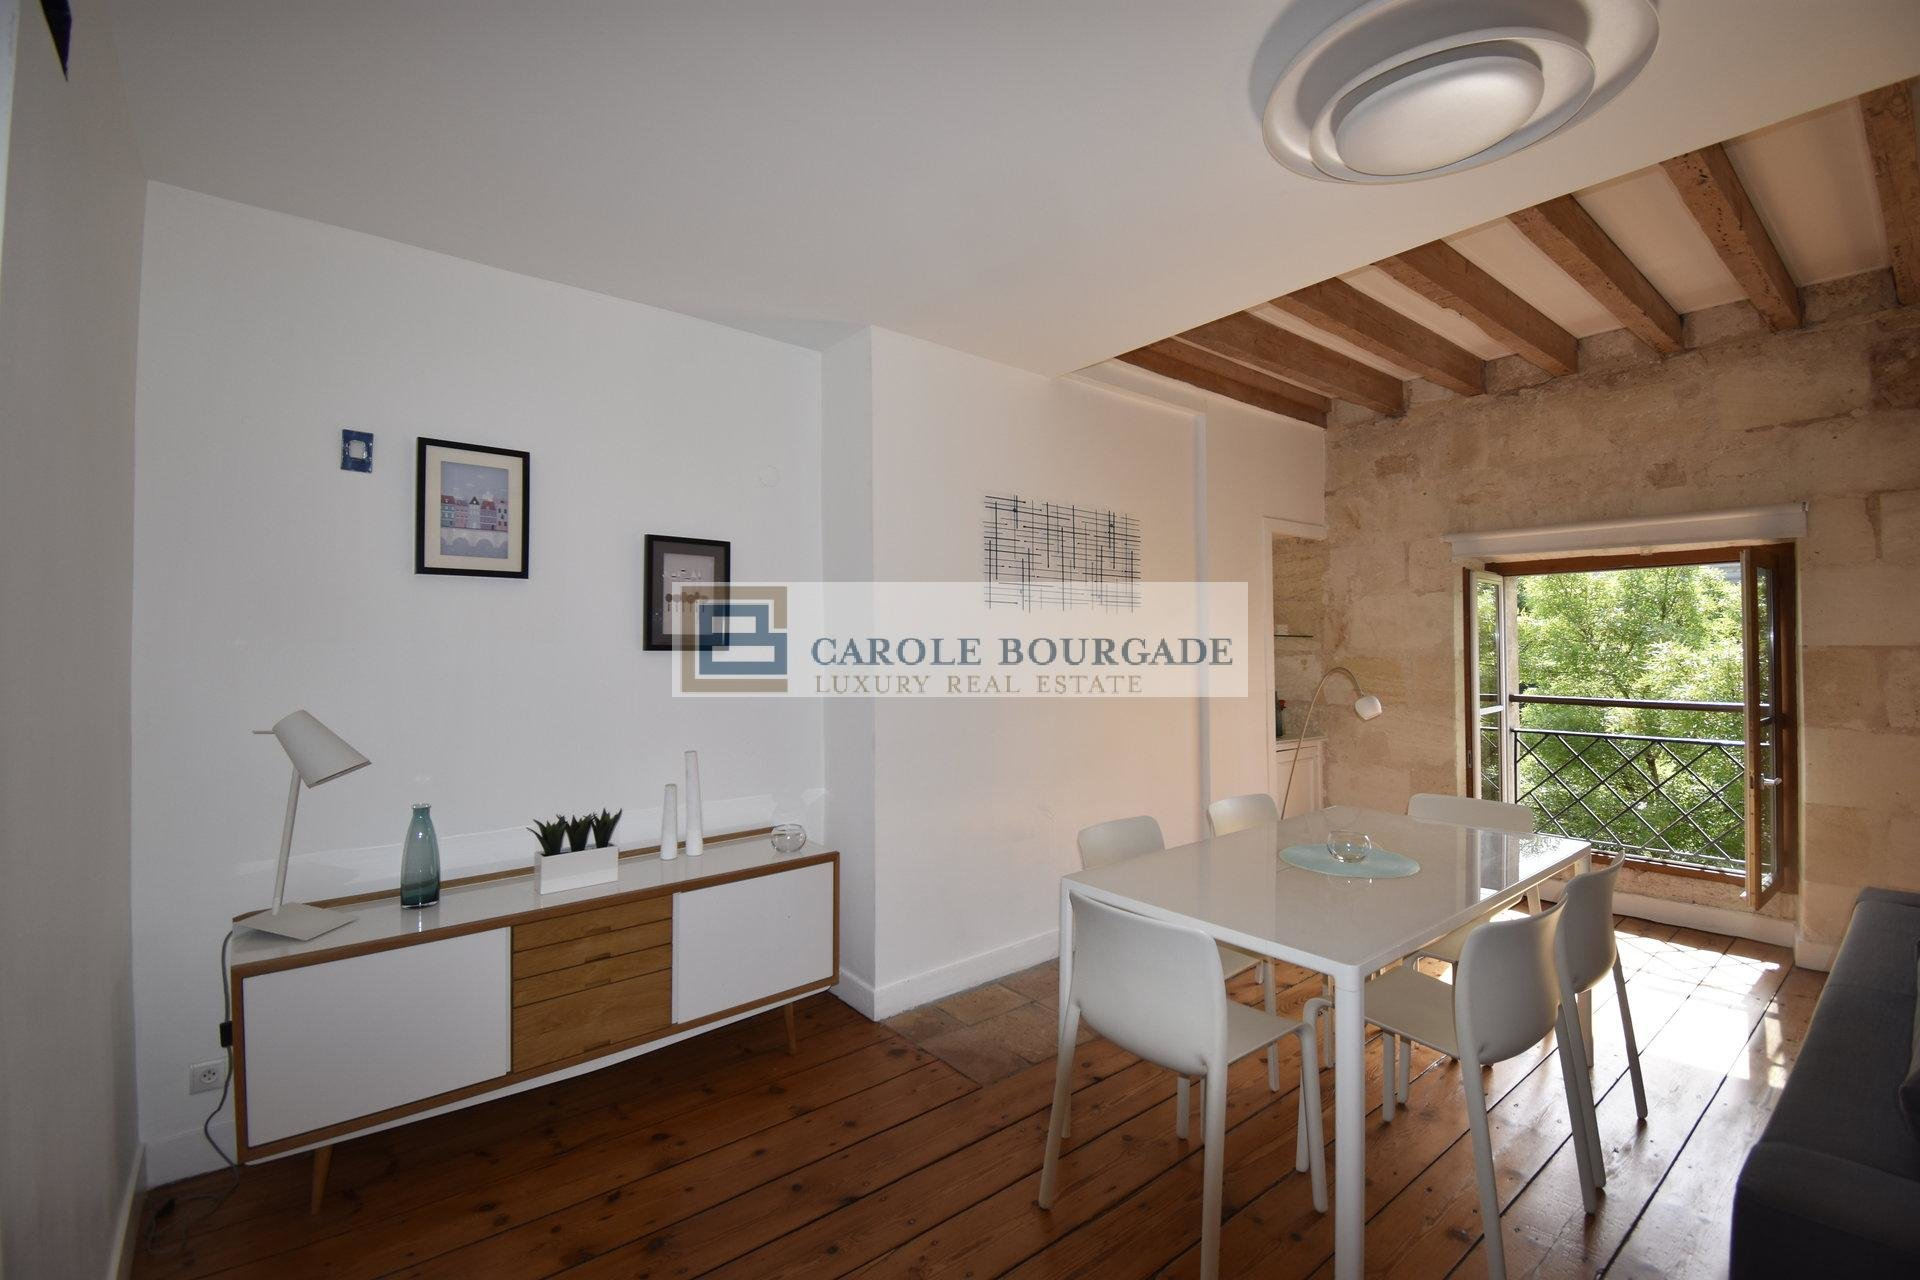 DUPLEX T4 3 BEDROOM FURNISHED APARTMENT BORDEAUX TRIANGLE